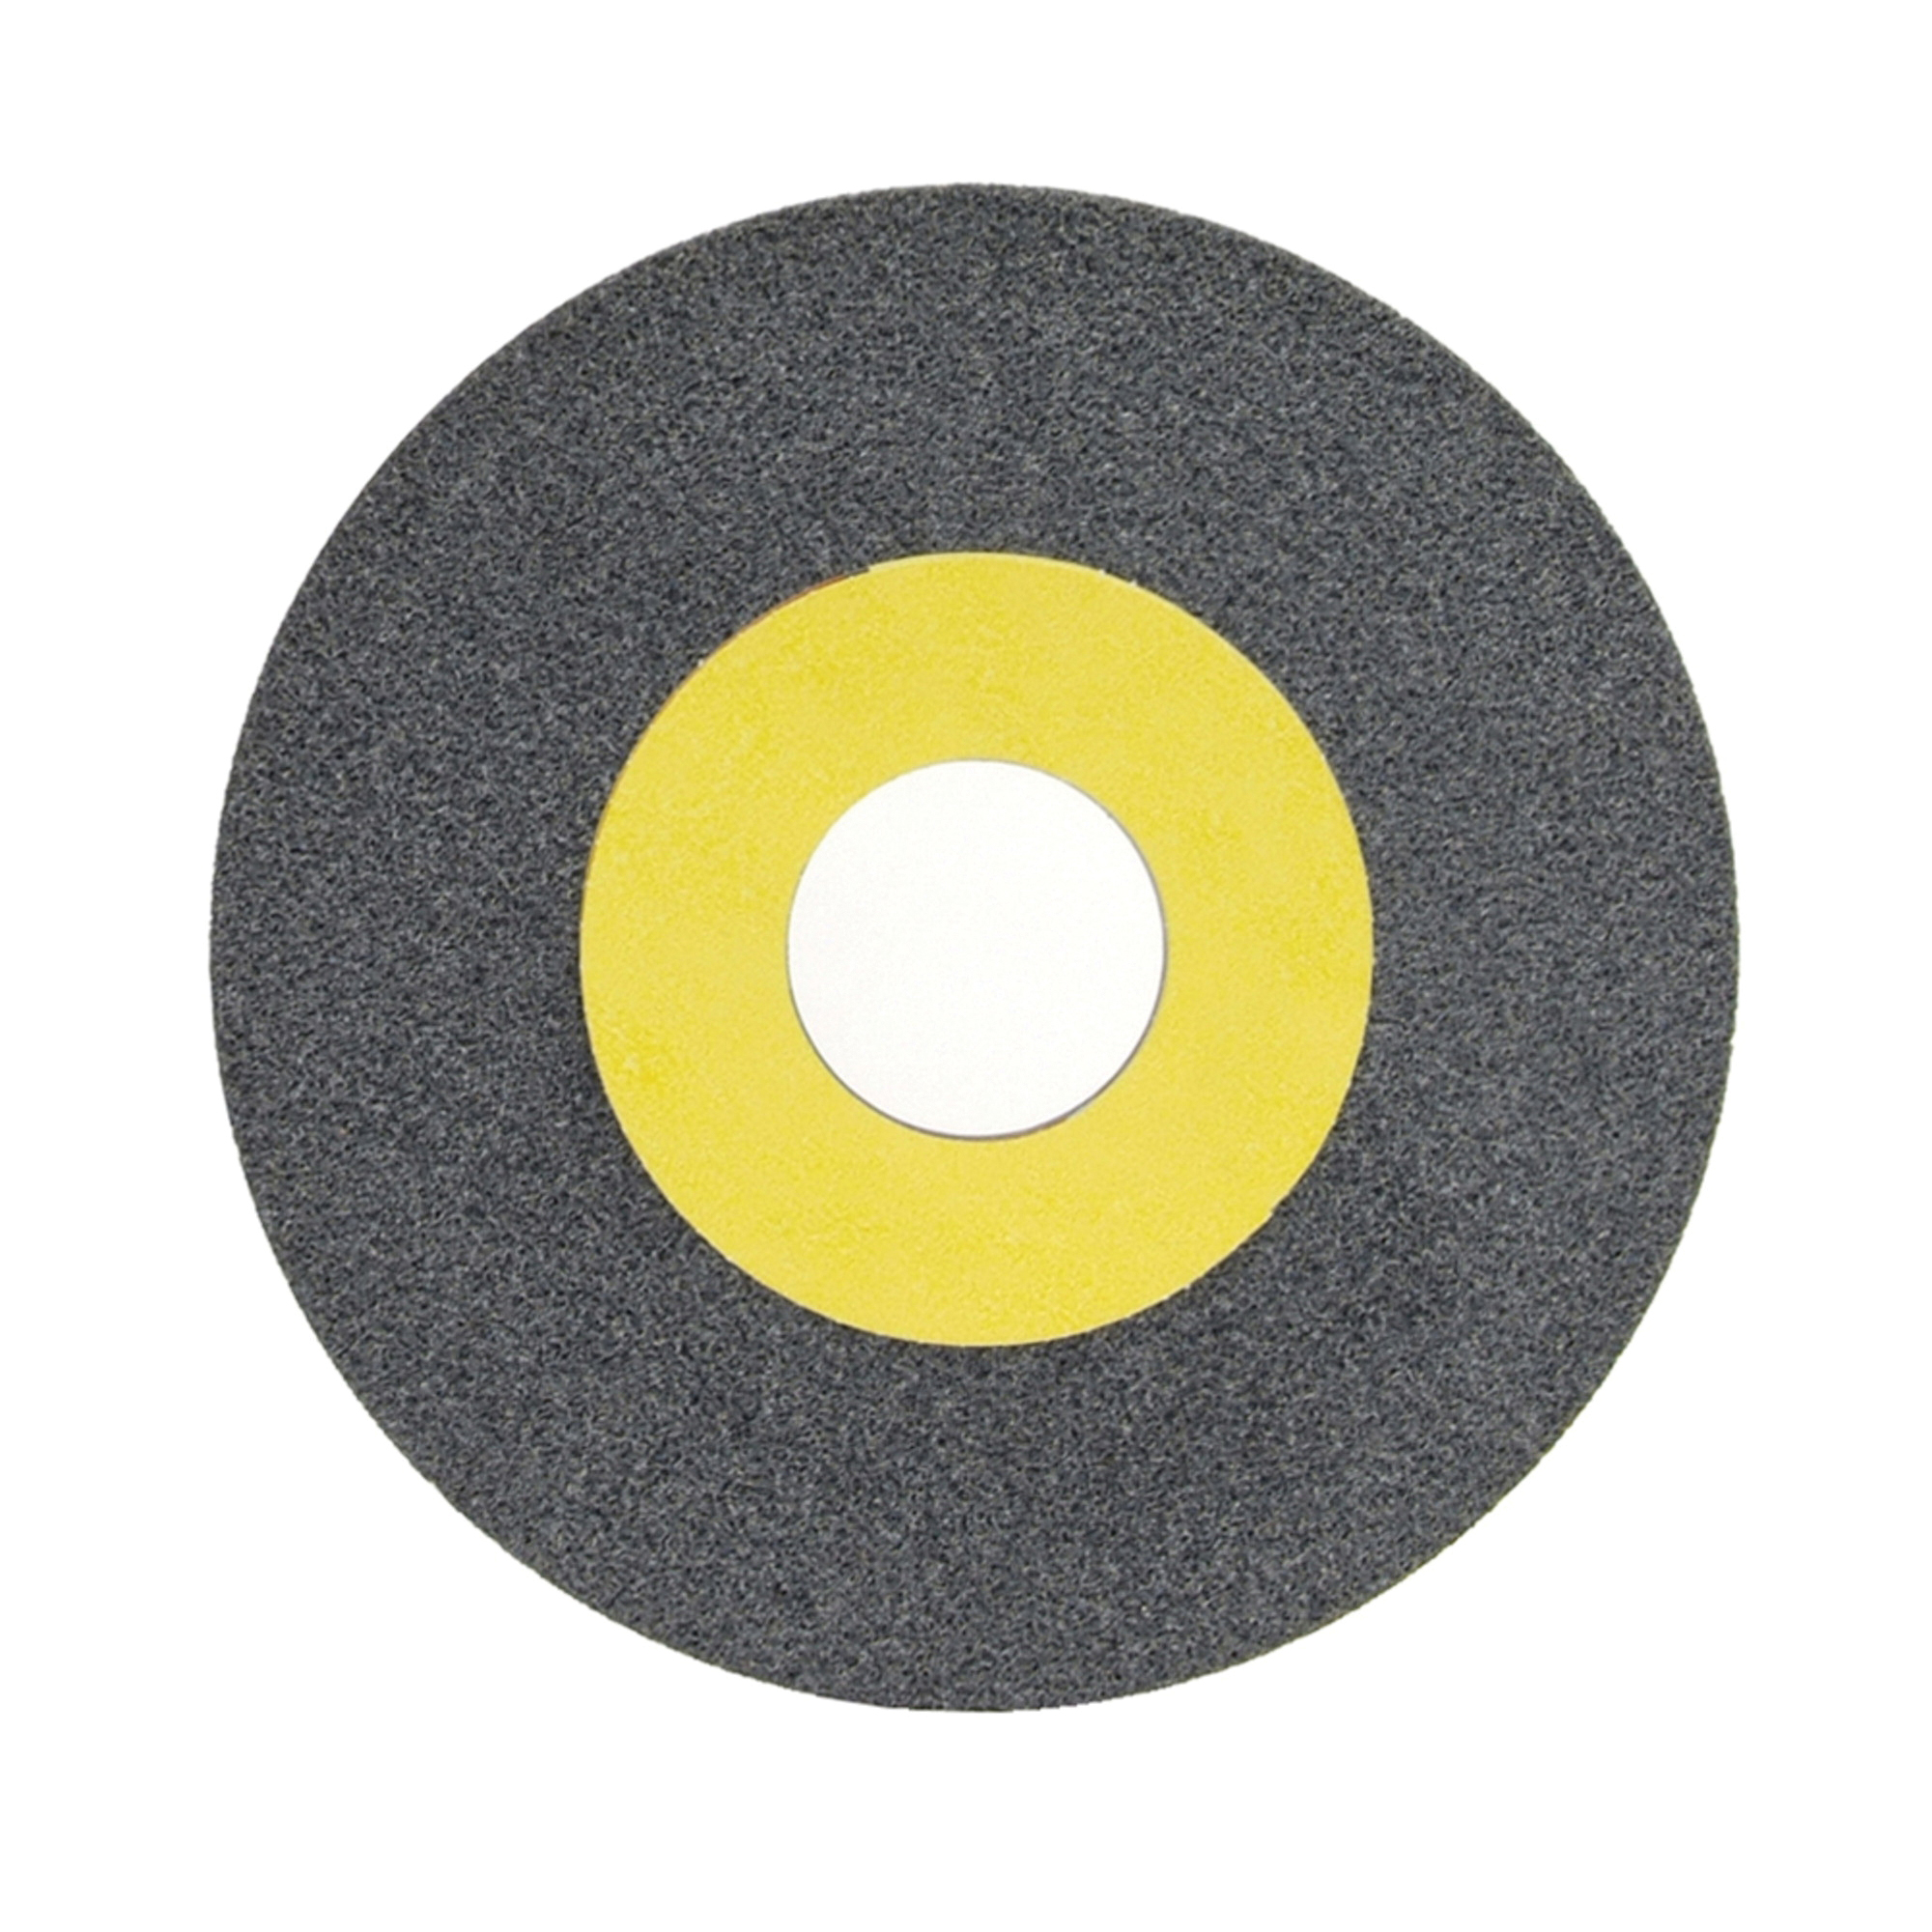 Norton® 66253262301 32A Straight Toolroom Wheel, 12 in Dia x 1-1/4 in THK, 3 in Center Hole, 46 Grit, Aluminum Oxide Abrasive